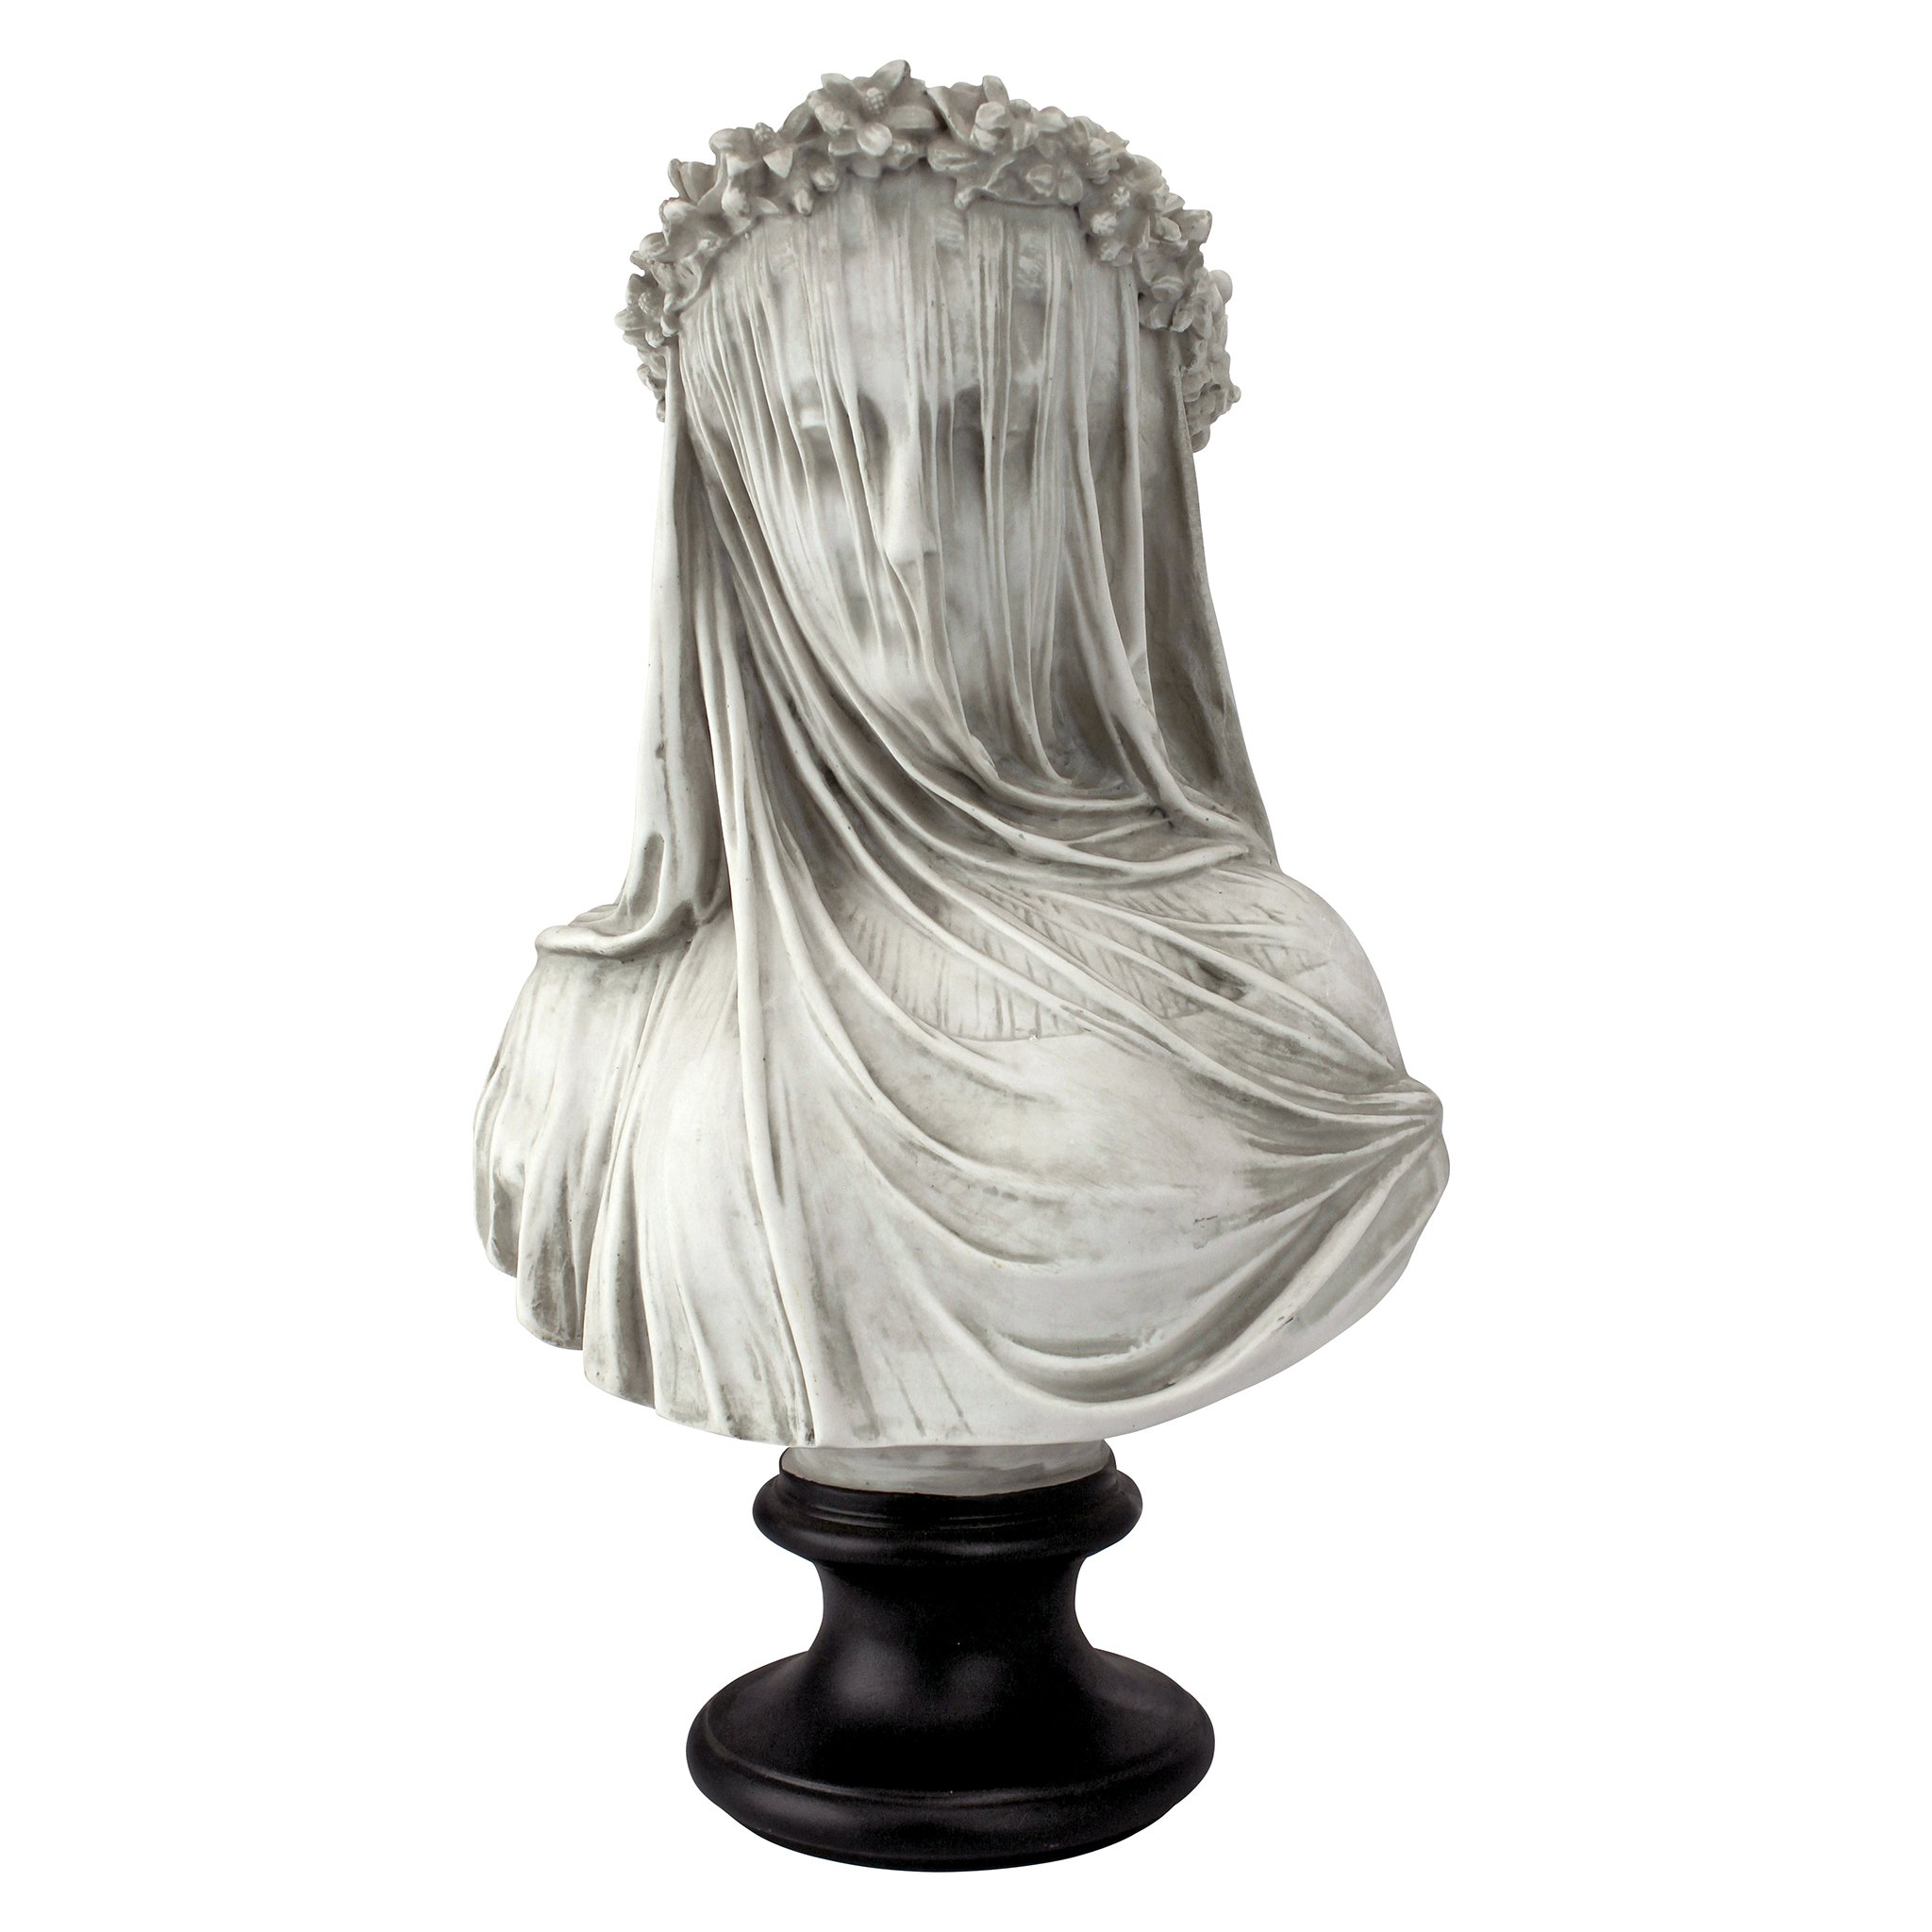 Design Toscano The Veiled Maiden Sculptural Bust by Design Toscano